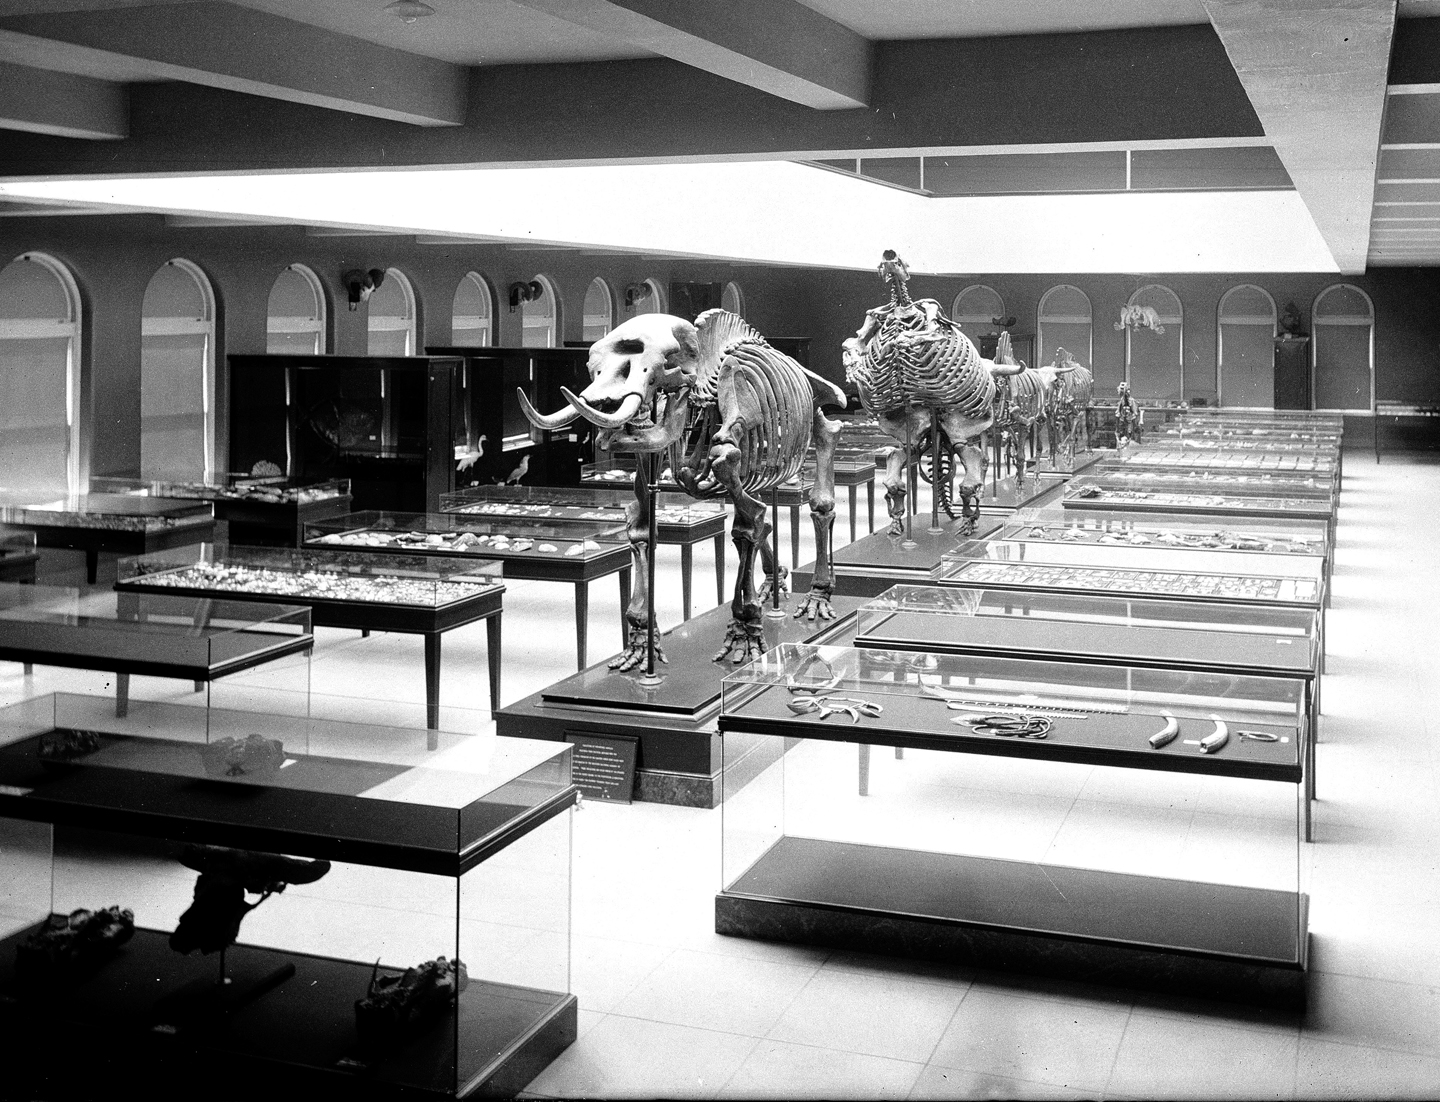 Interior view of the Los Angeles County Museum of Natural History showing displays of prehistoric skeletons, 1920. Courtesy: California Historical Society Collection, San Francisco / USC Digital Library, Los Angeles. Photo: User: Fæ / Wikimedia Commons / CC-0